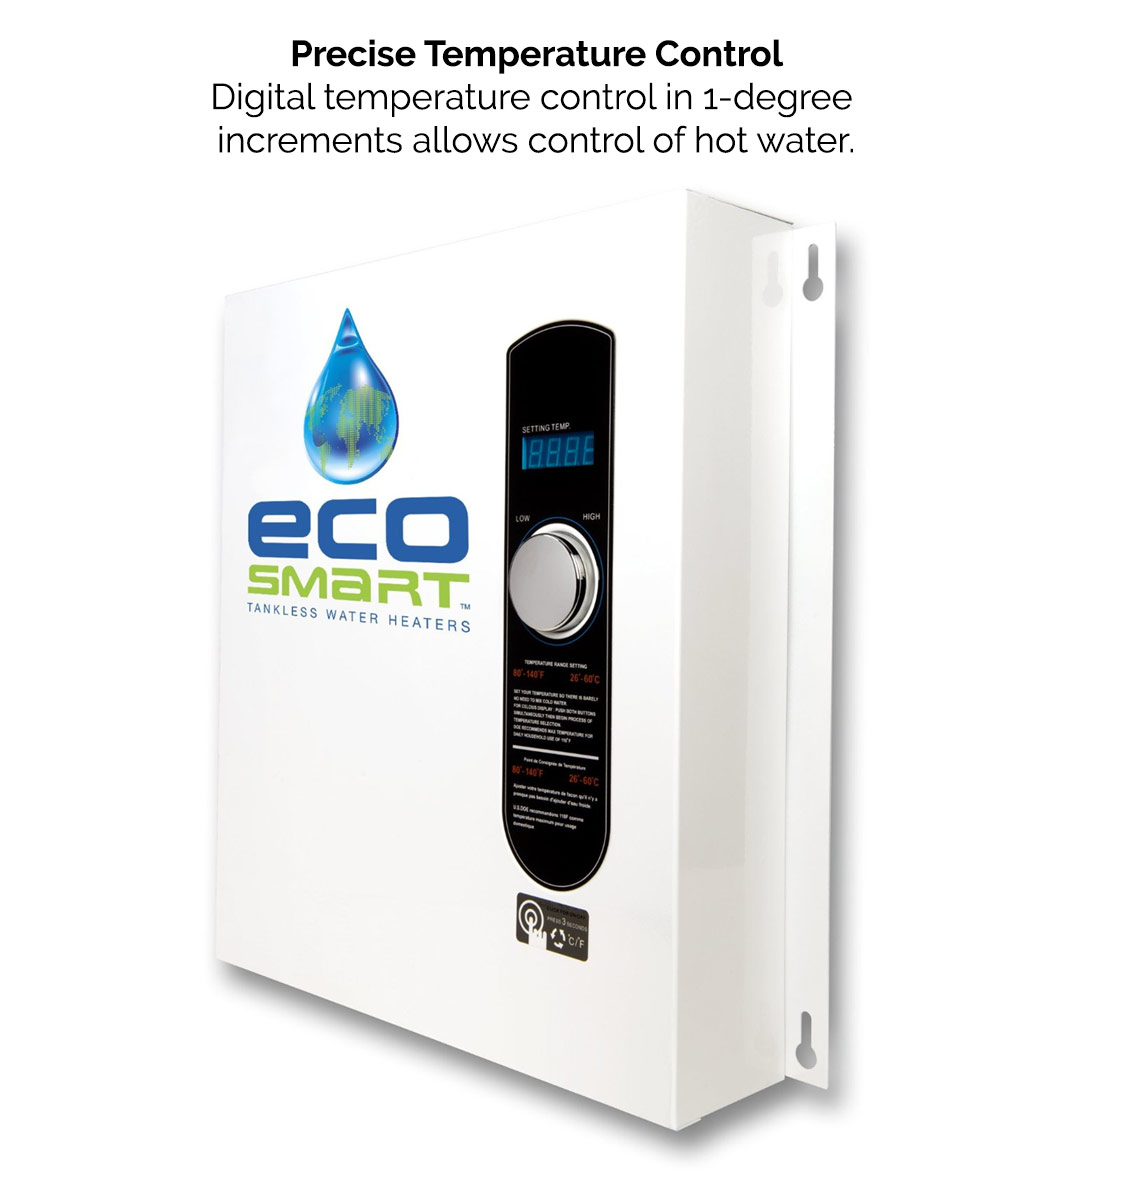 Ecosmart Tankless Water Heater Precise Temperature Control